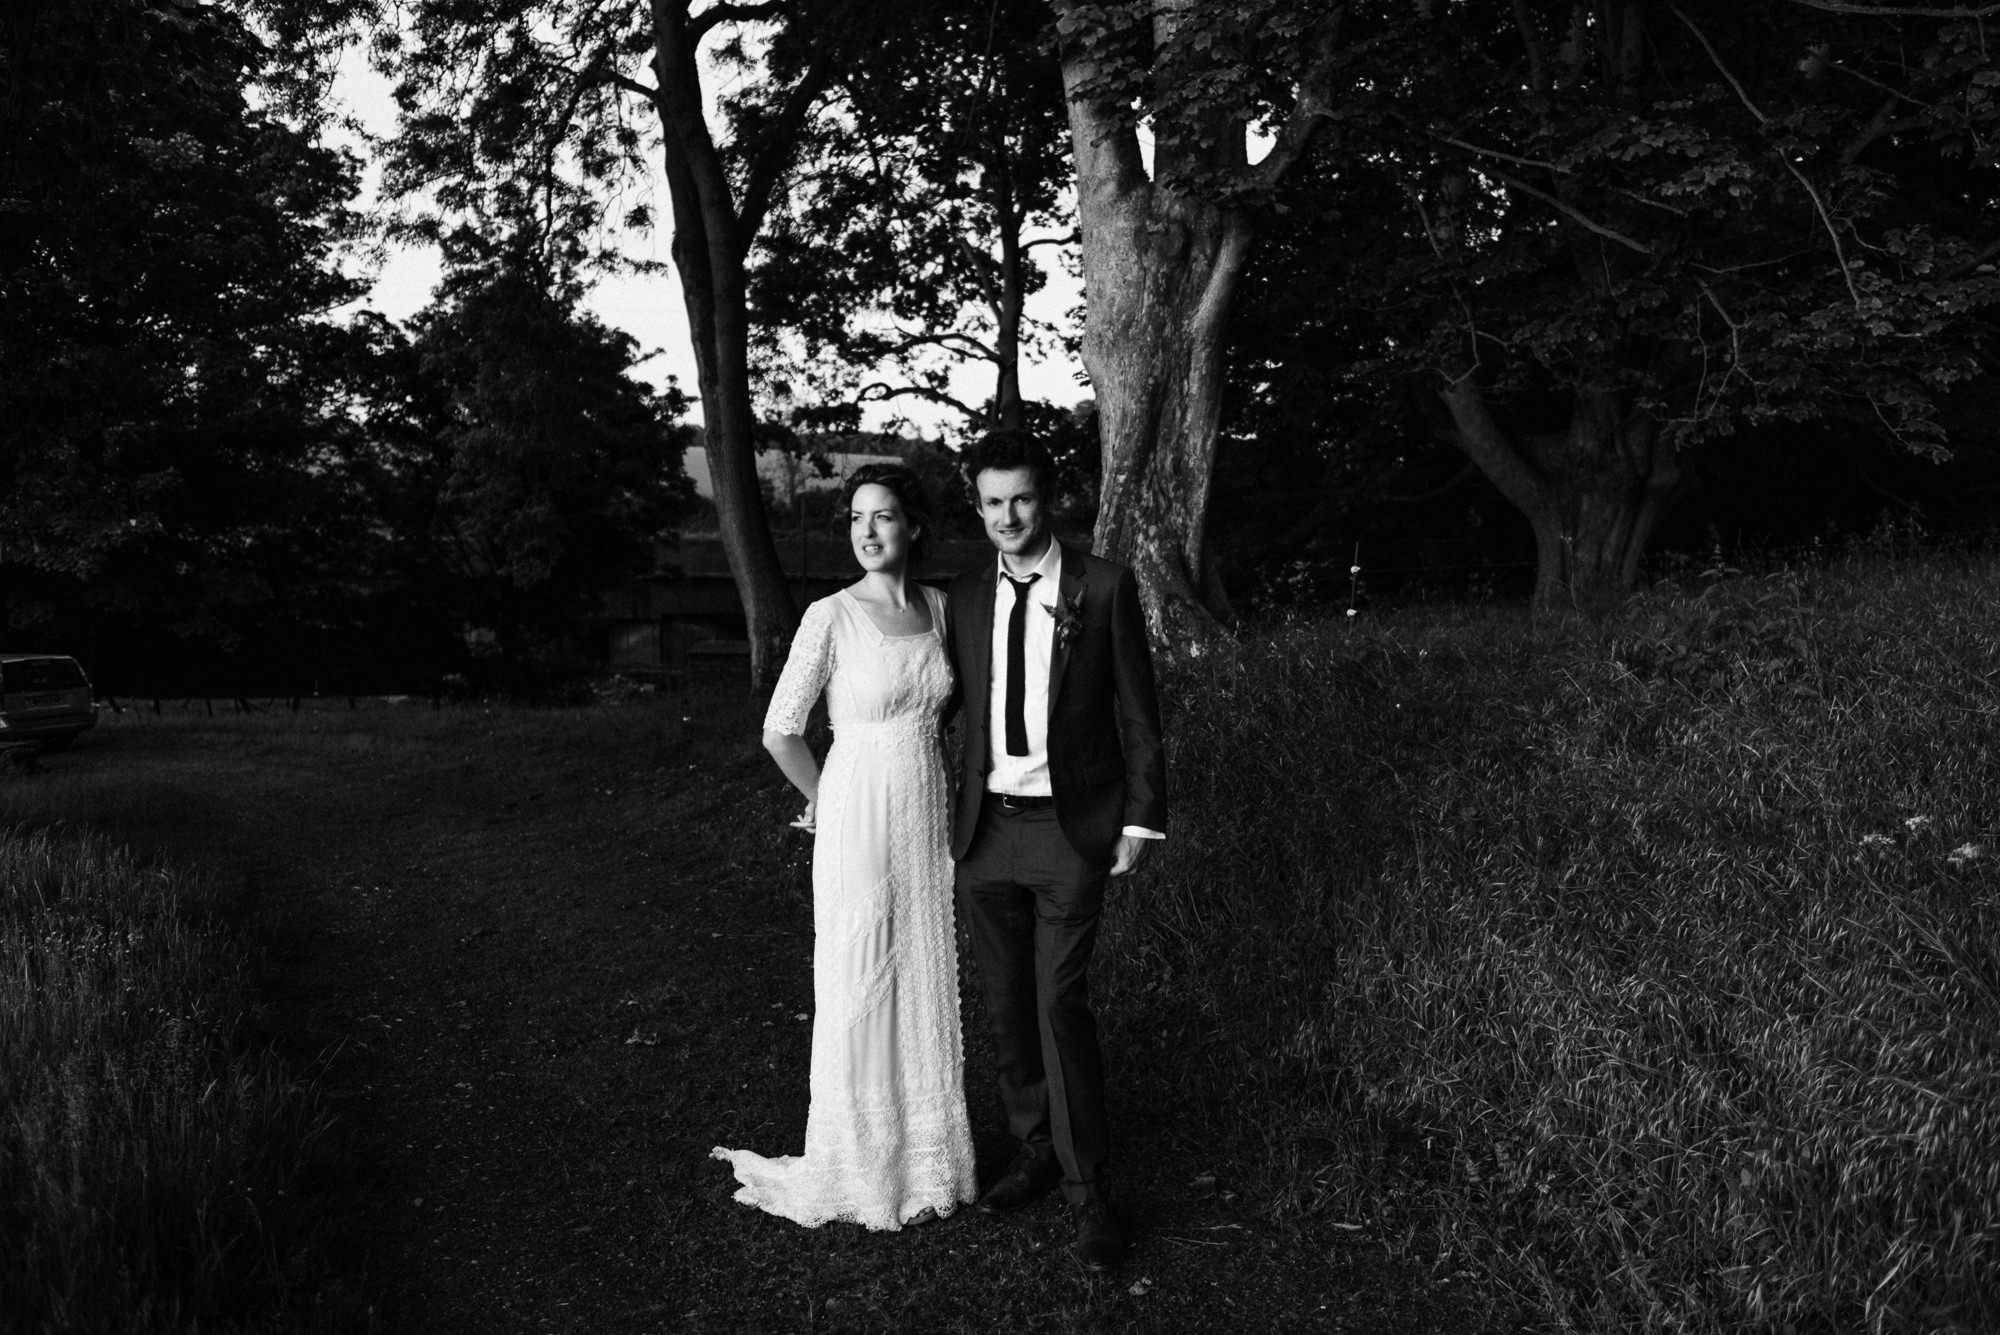 Swarling Manor Photos